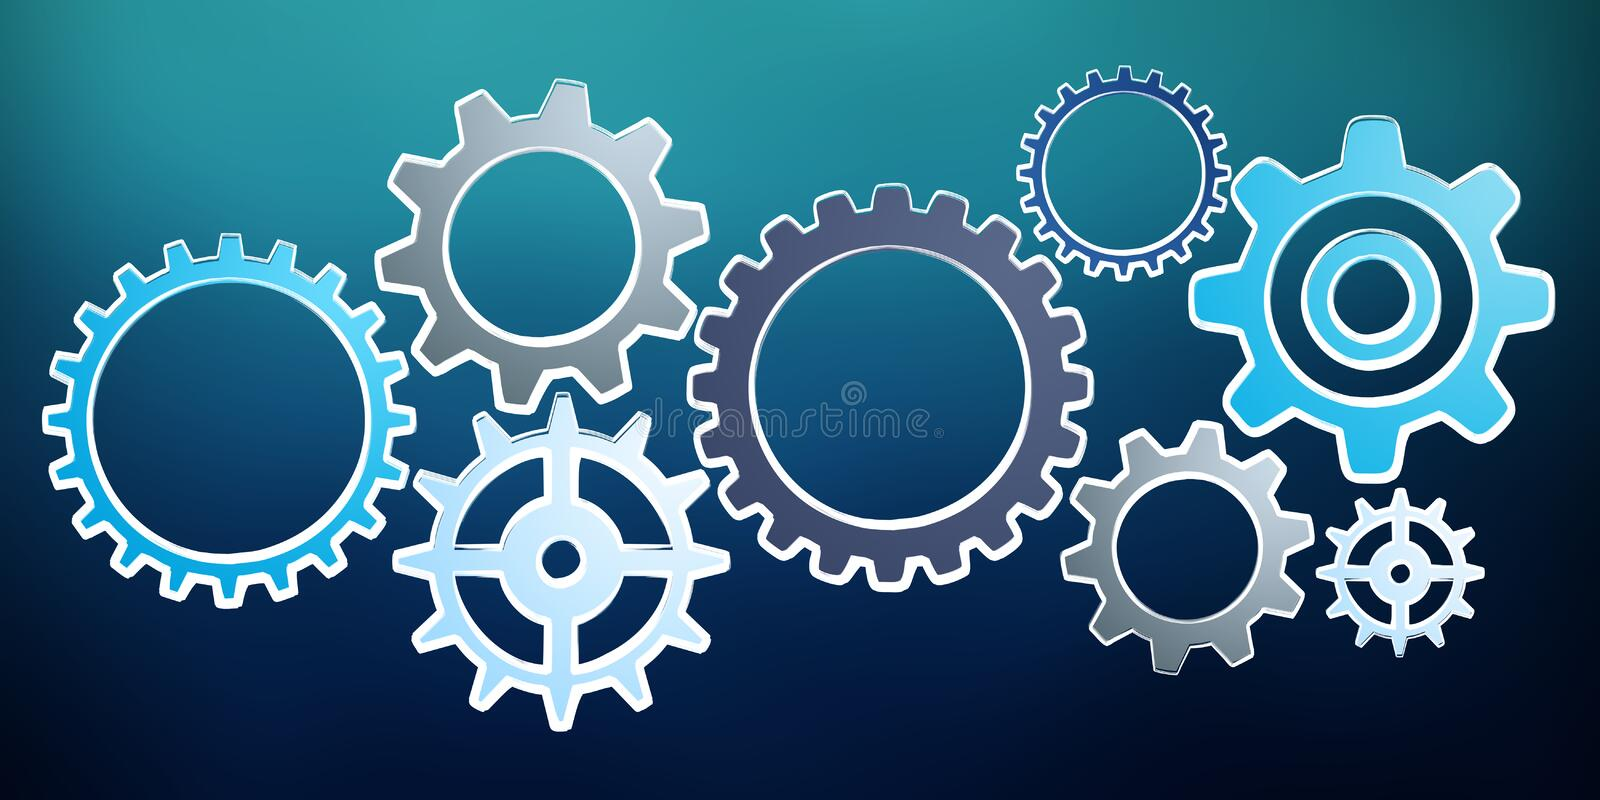 Hand-drawn gears sketch vector illustration